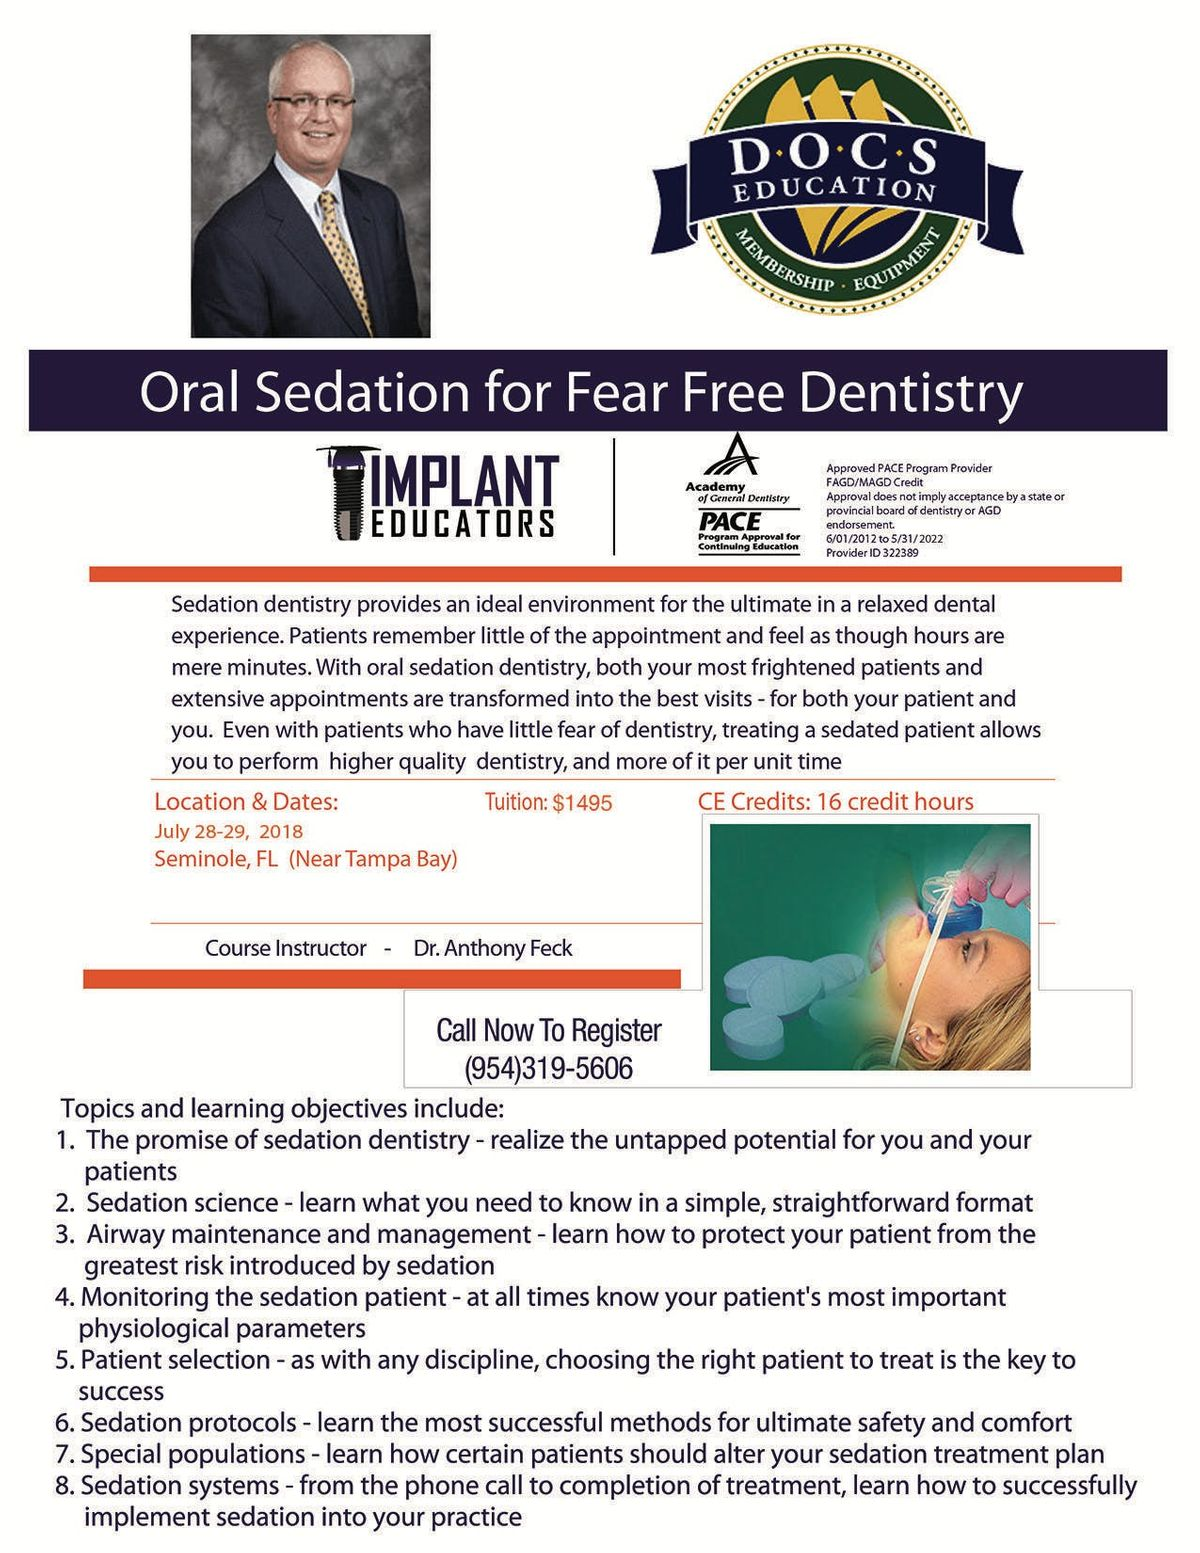 Oral Sedation Dentistry with Dr  Tony Feck  DOCS at Hampton